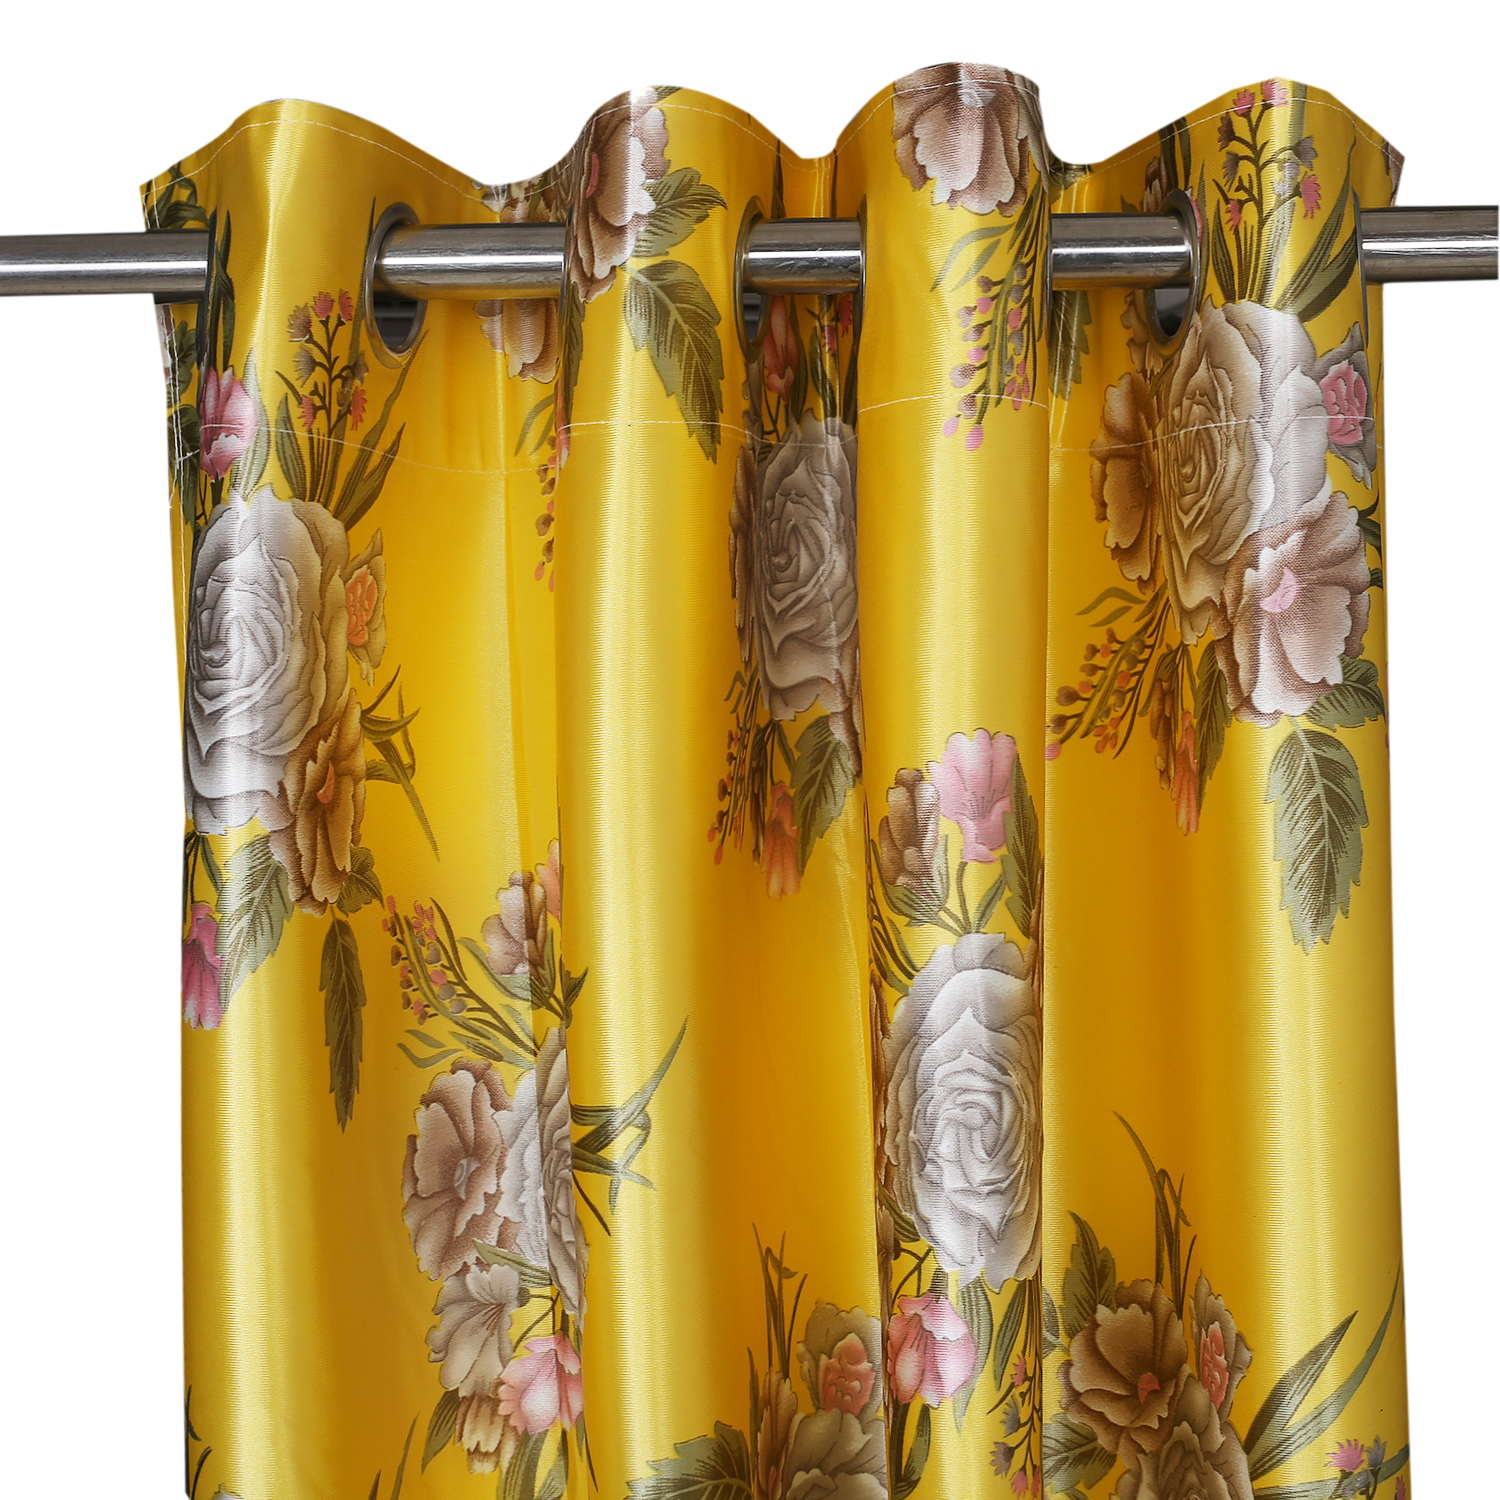 Kuber Industries Polyester 4 Pieces 7 Feet Eyelet Door Curtain (Gold) -CTKTC12948